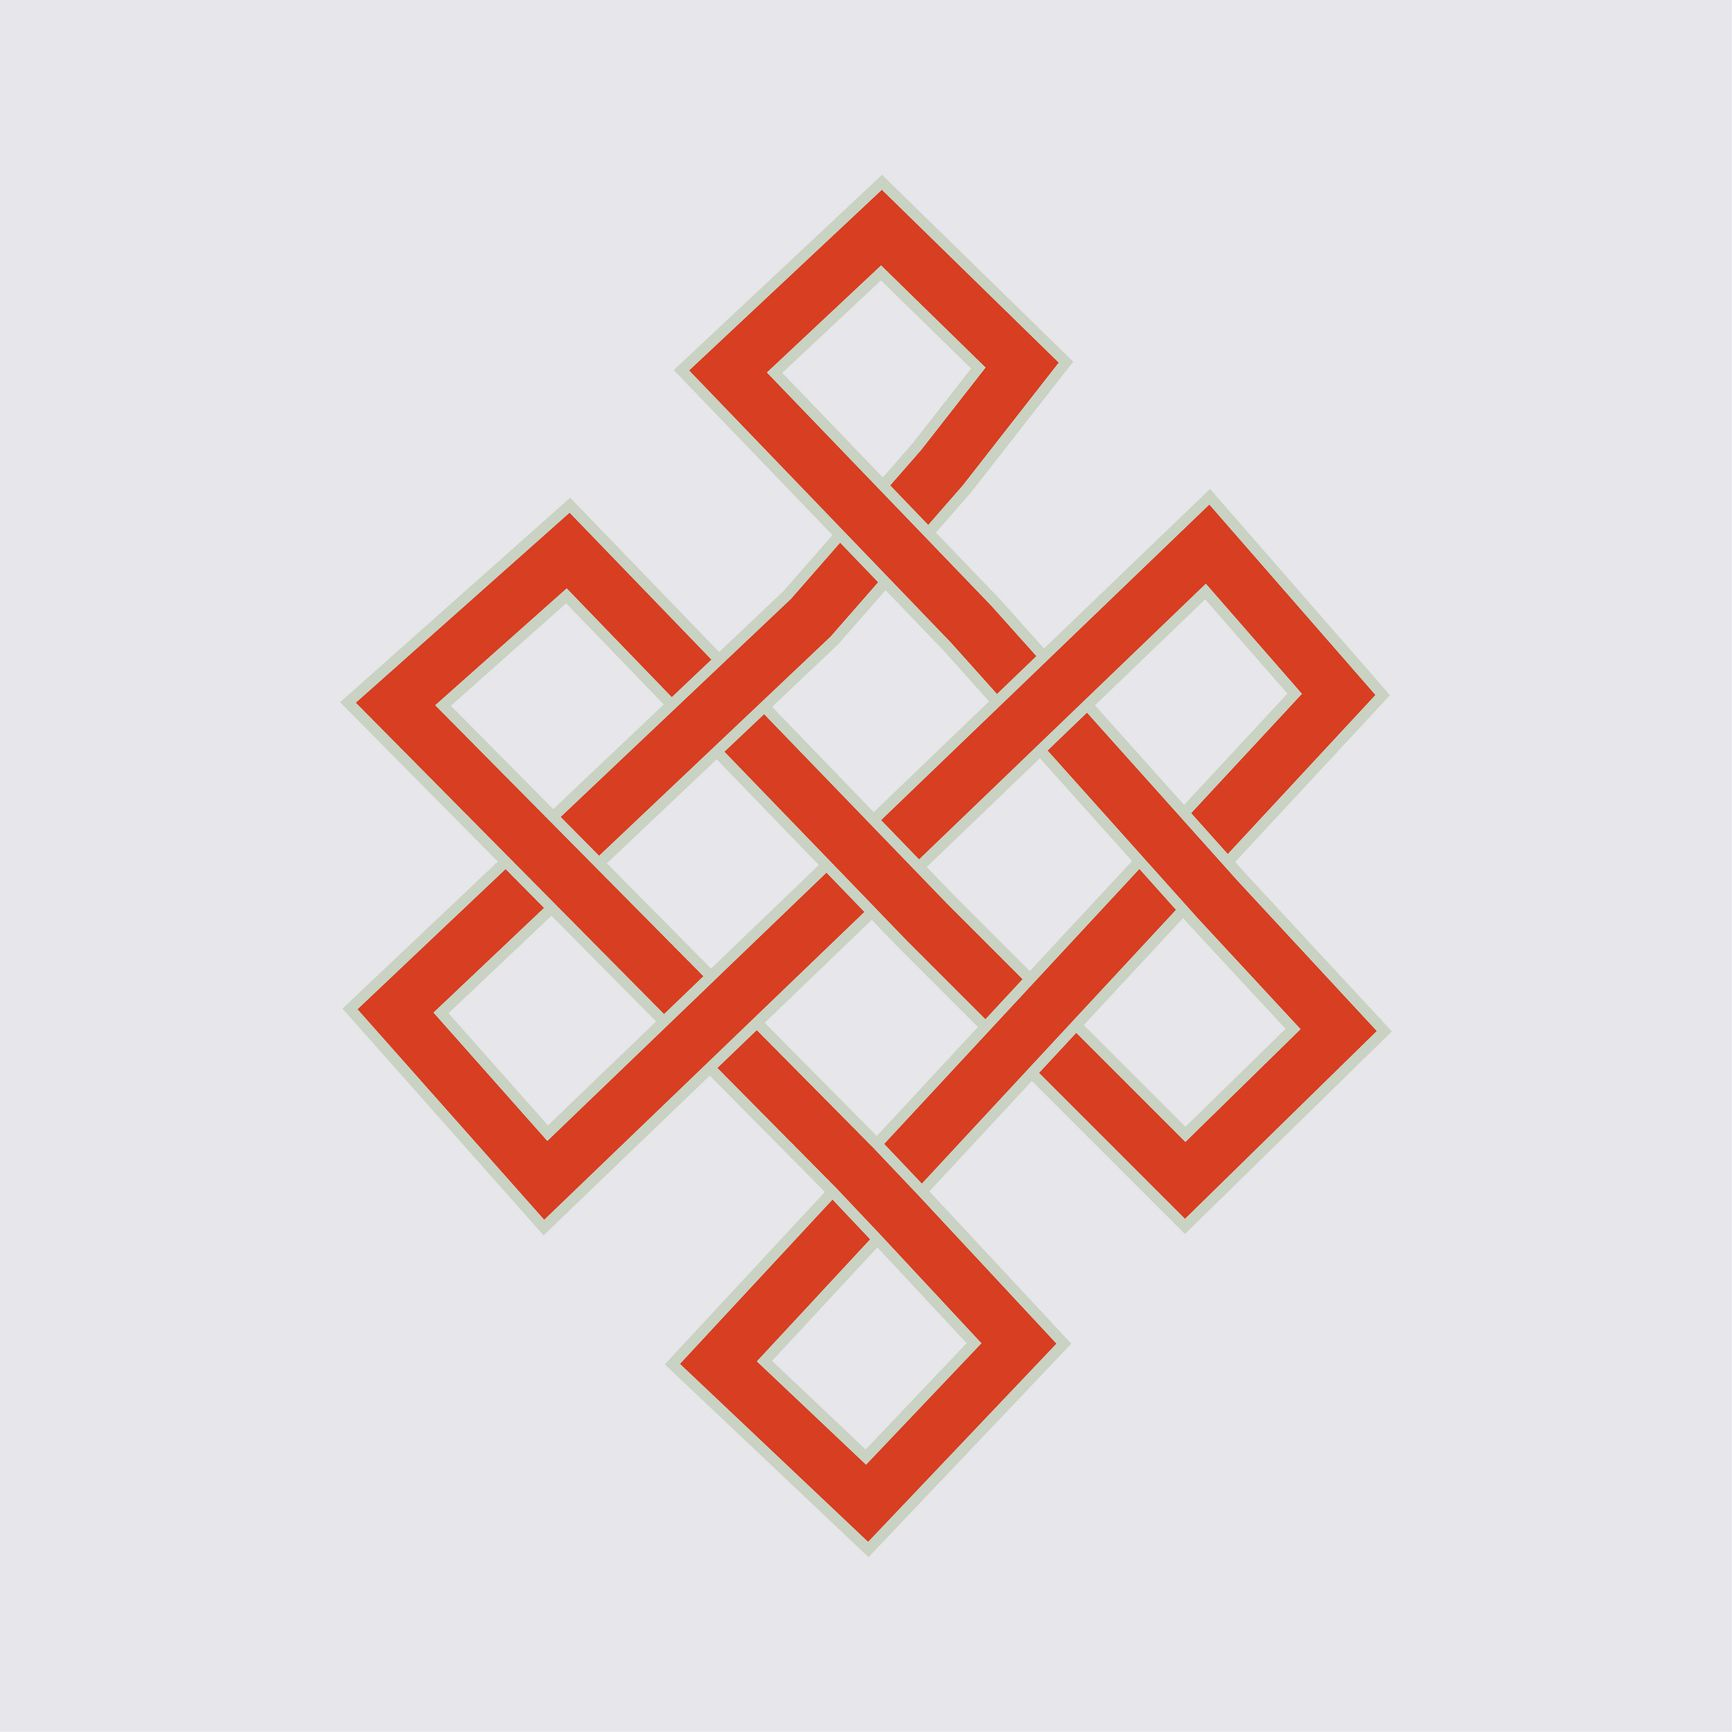 Glorious Eternal Knot or Endless Knot in red